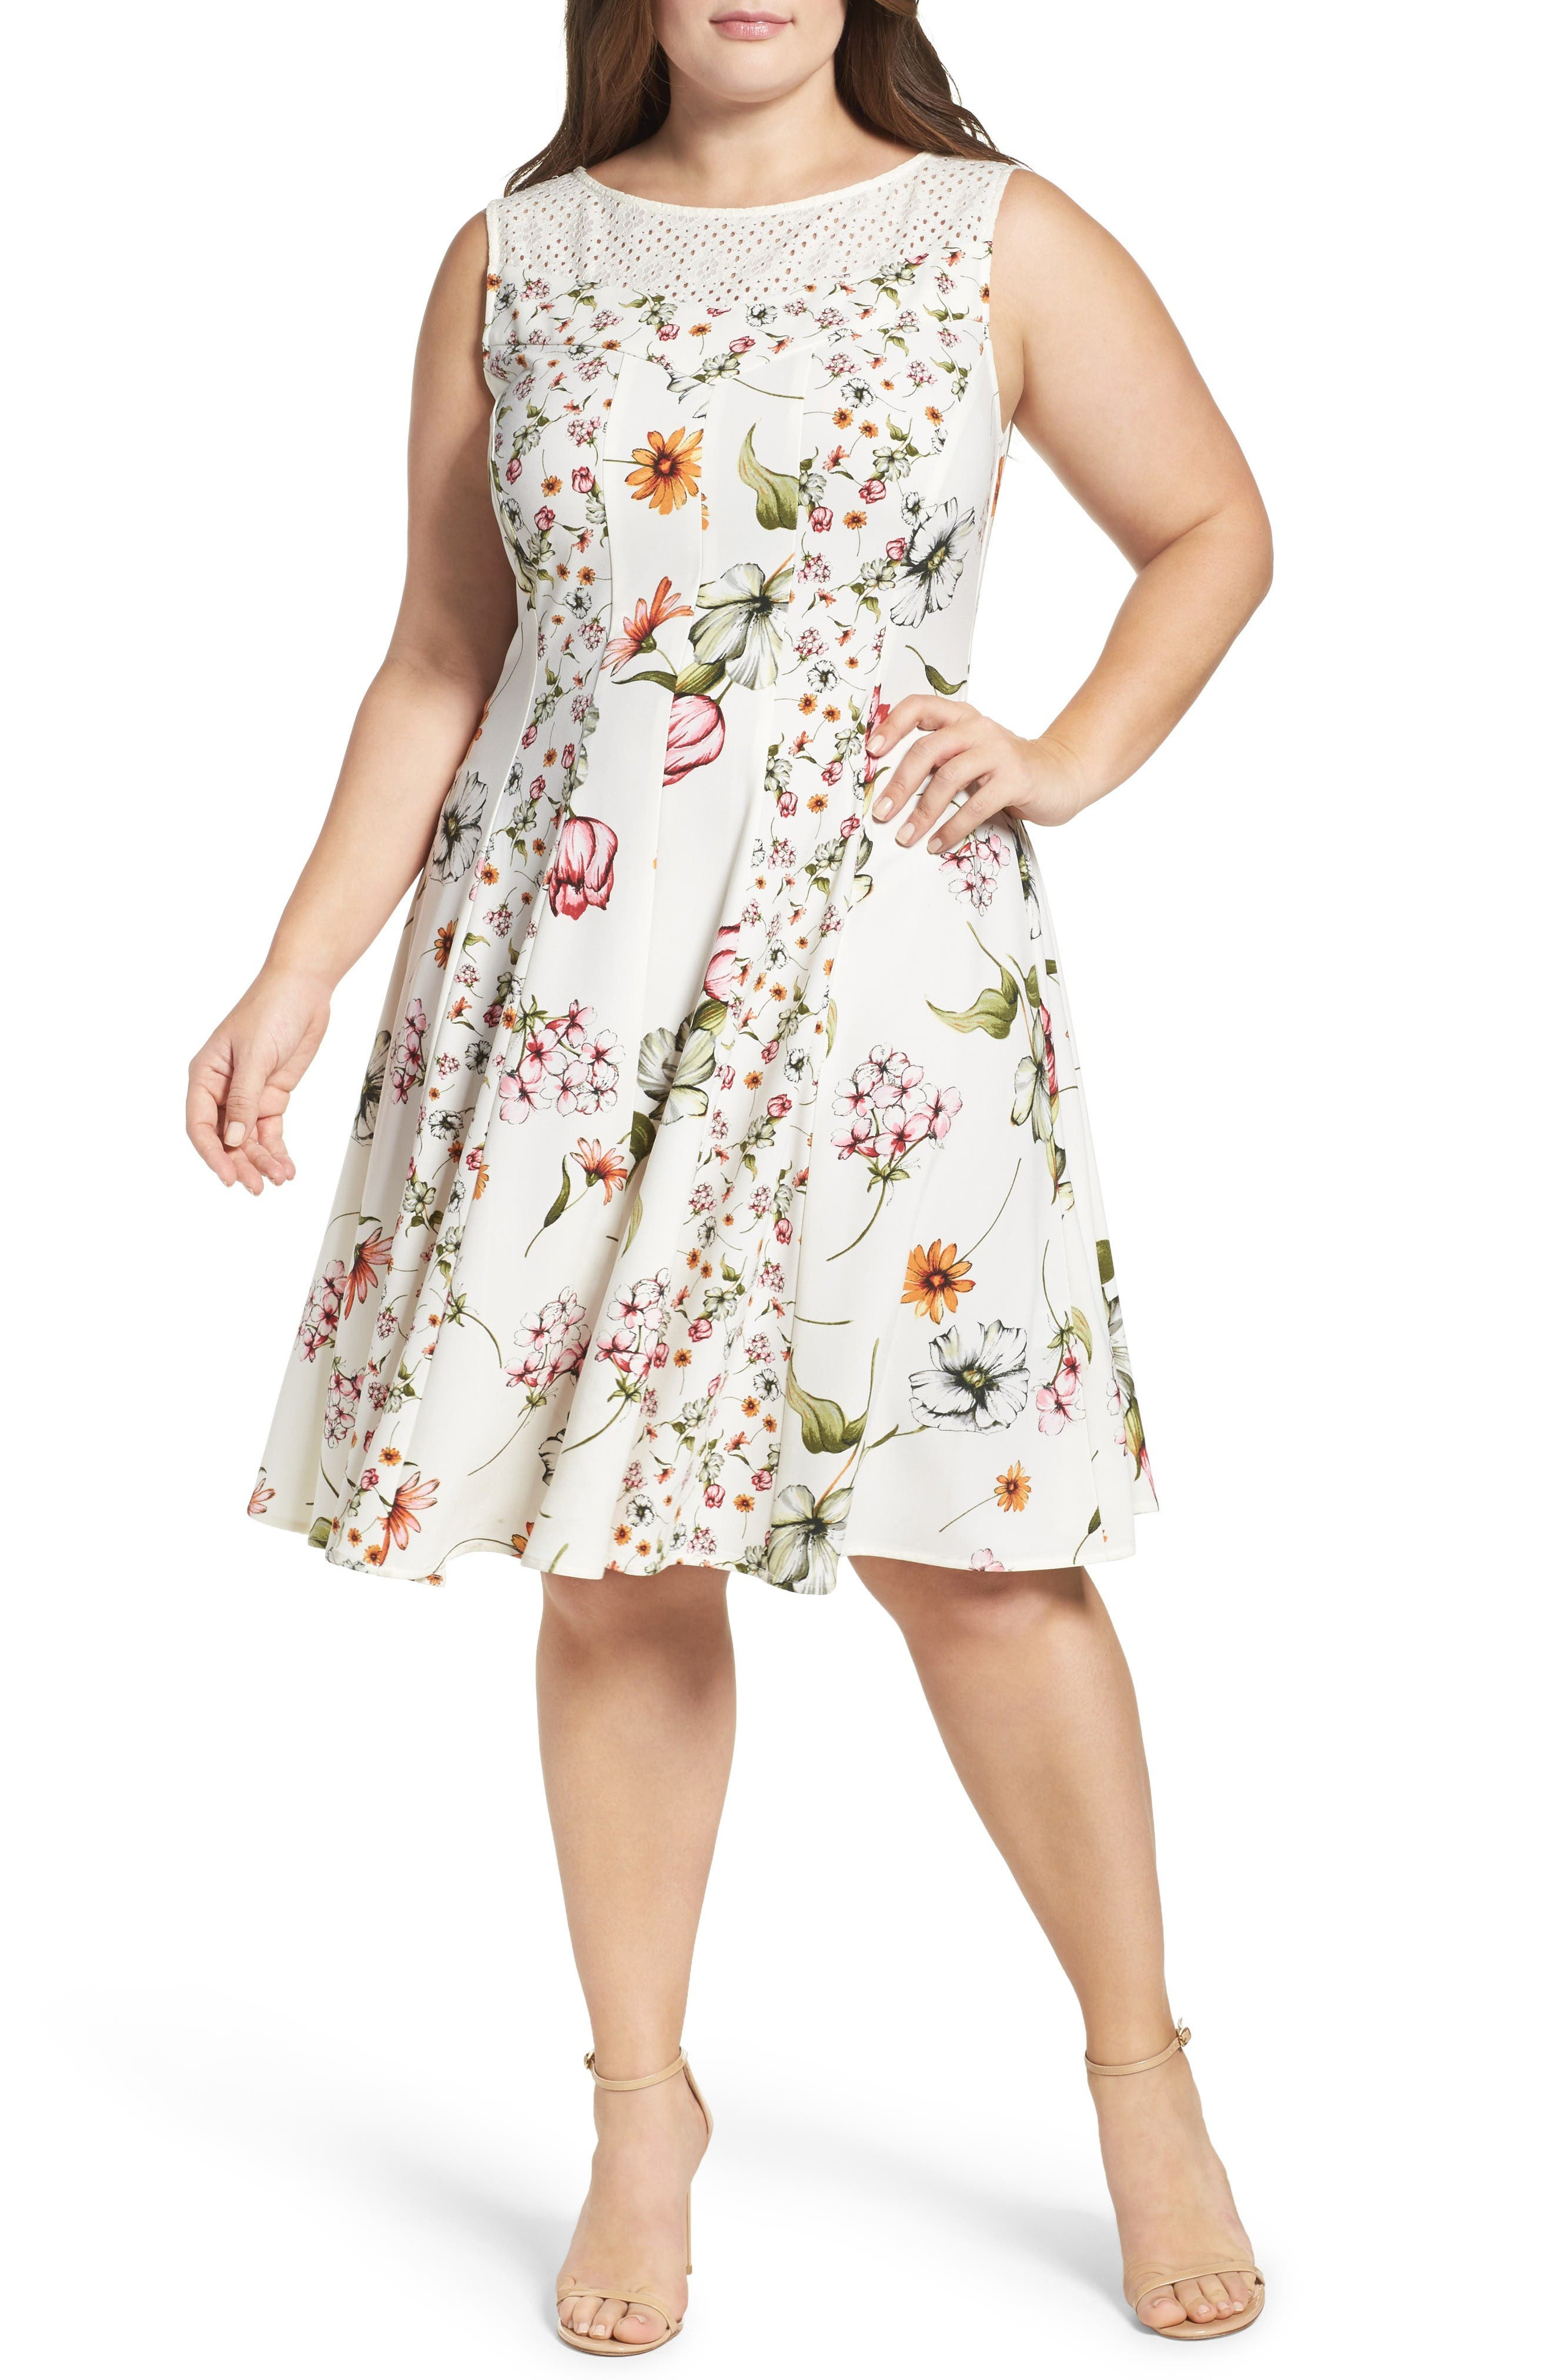 Main Image - Gabby Skye Floral Print Fit & Flare Dress (Plus Size)